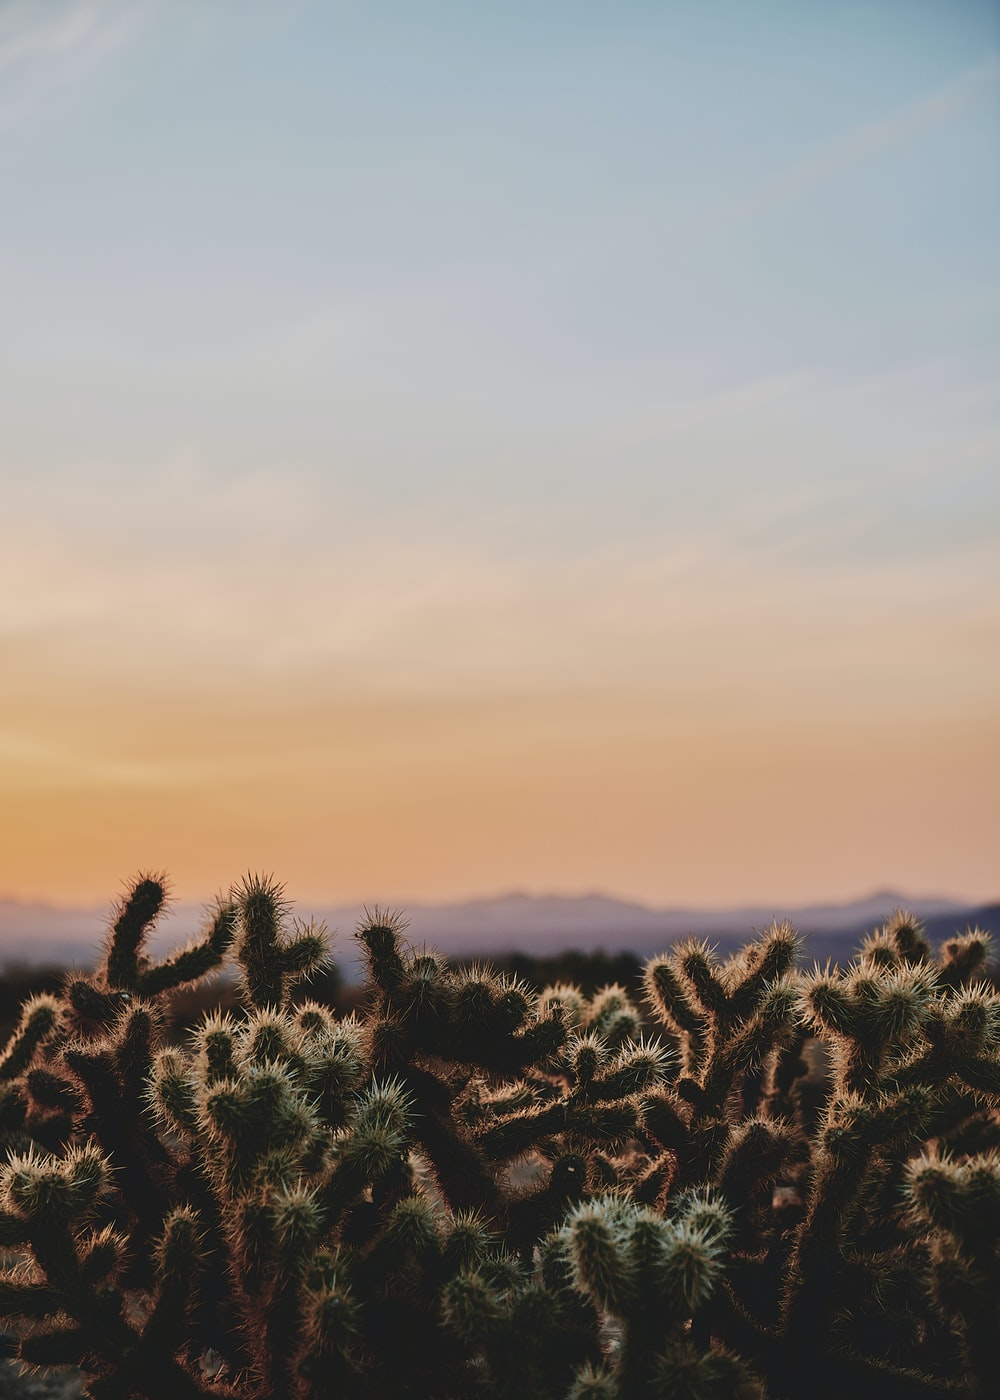 closeup photo of cactus under white and blue sky during daytime photography